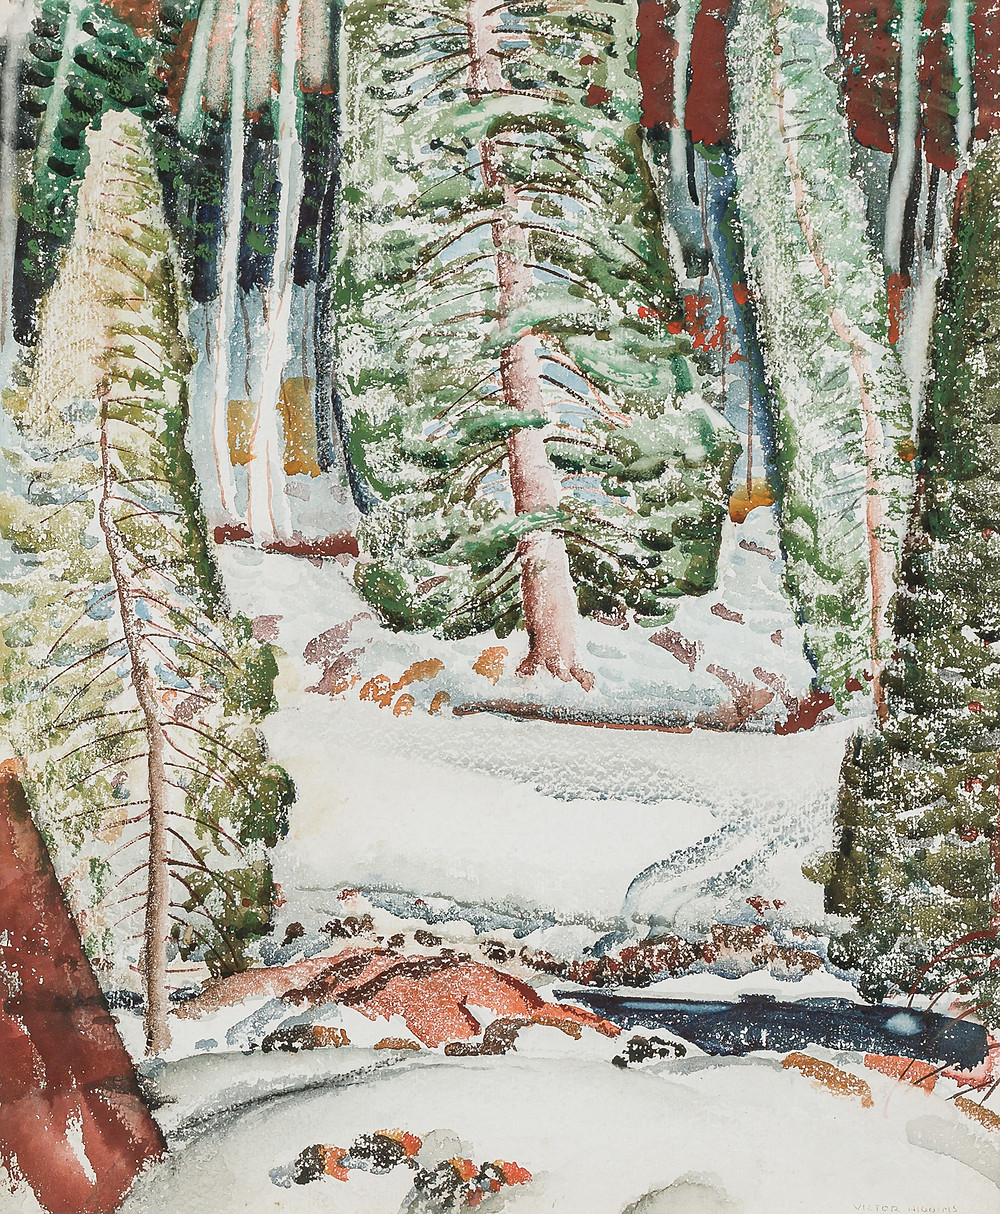 Winter landscape watercolor with trees in snow by Victor Higgins.